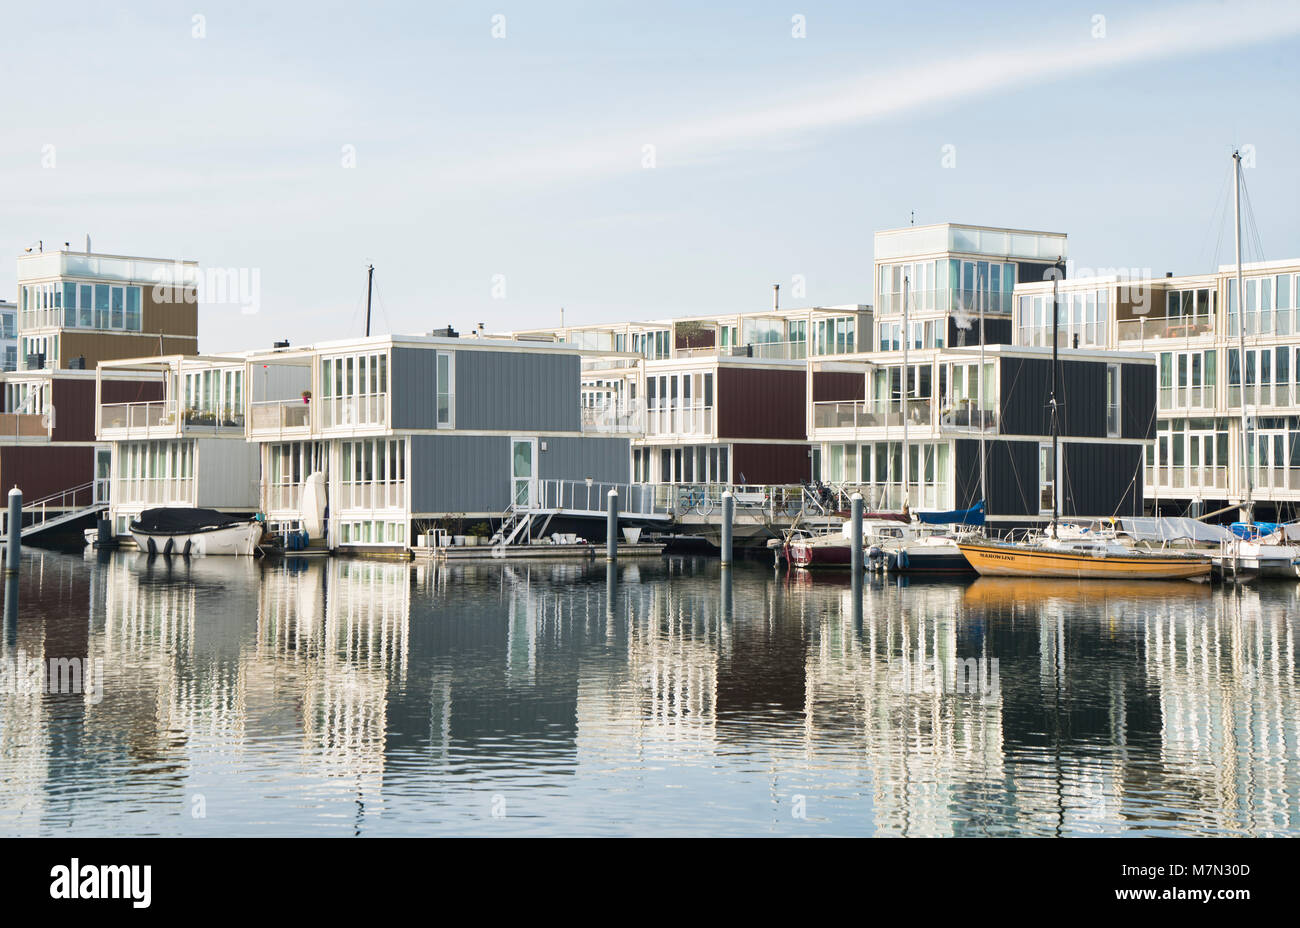 Water houses in IJburg, Amsterdam The Netherlands - Stock Image